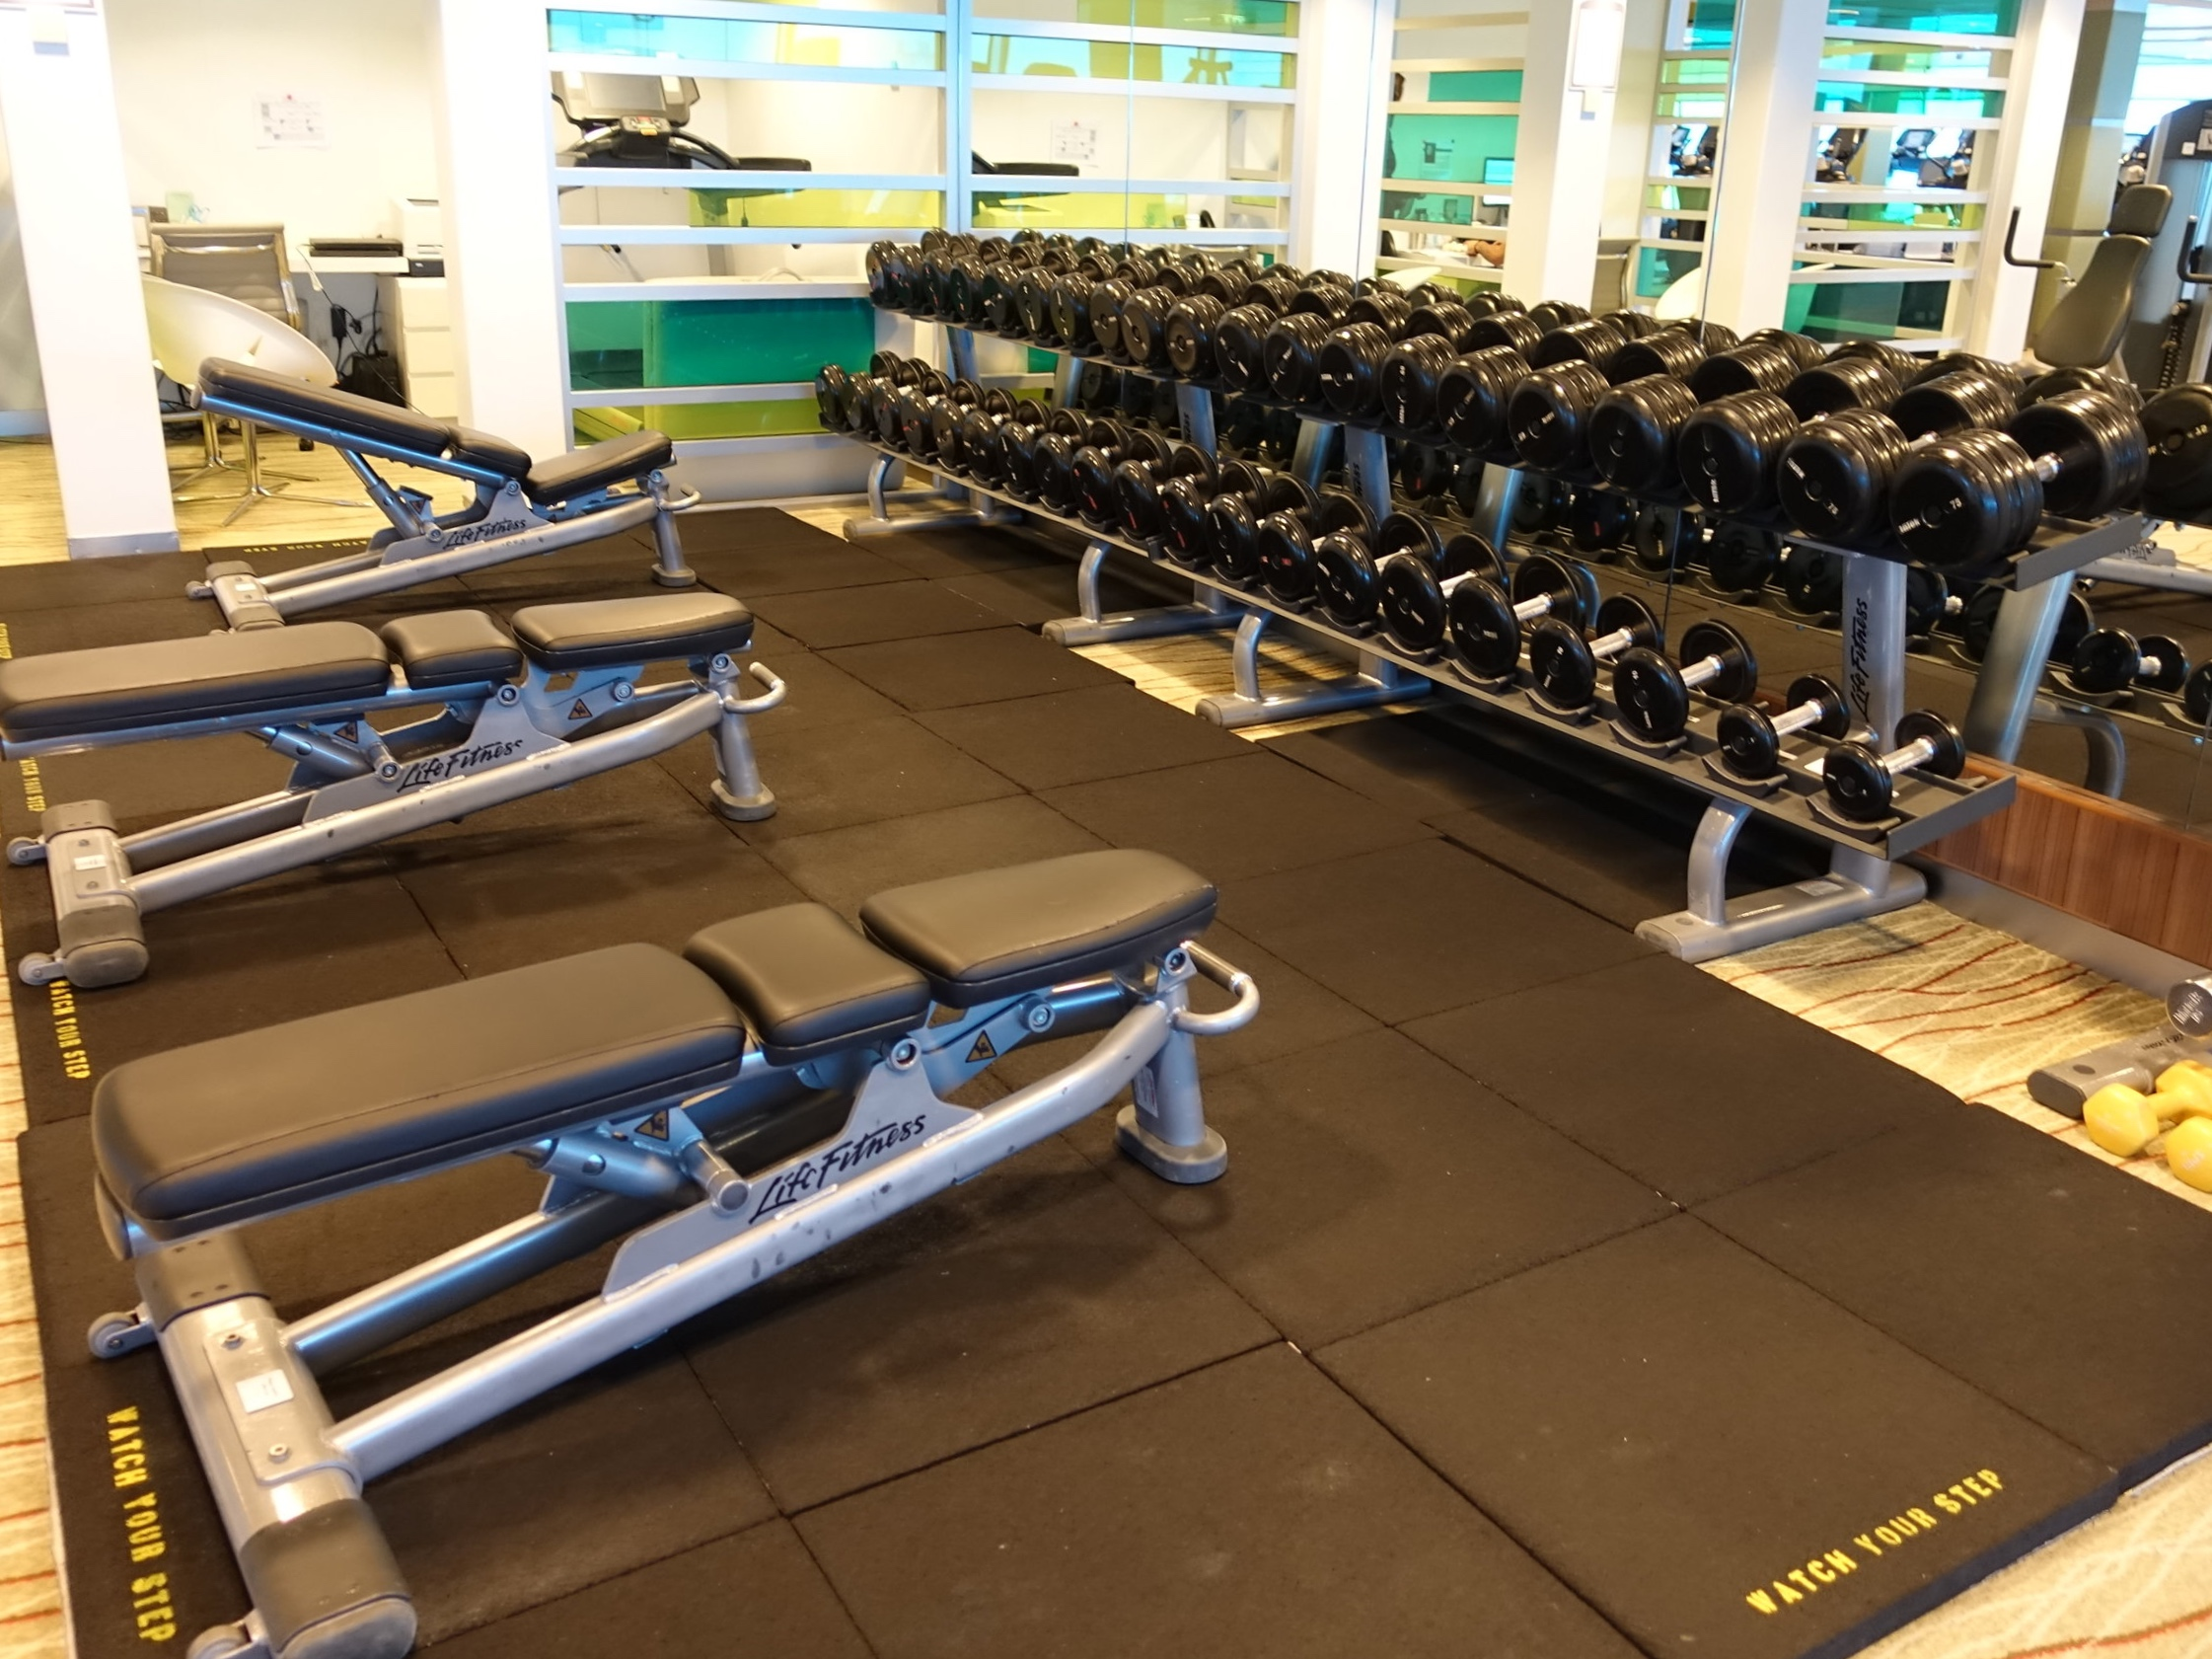 The large free weights area.